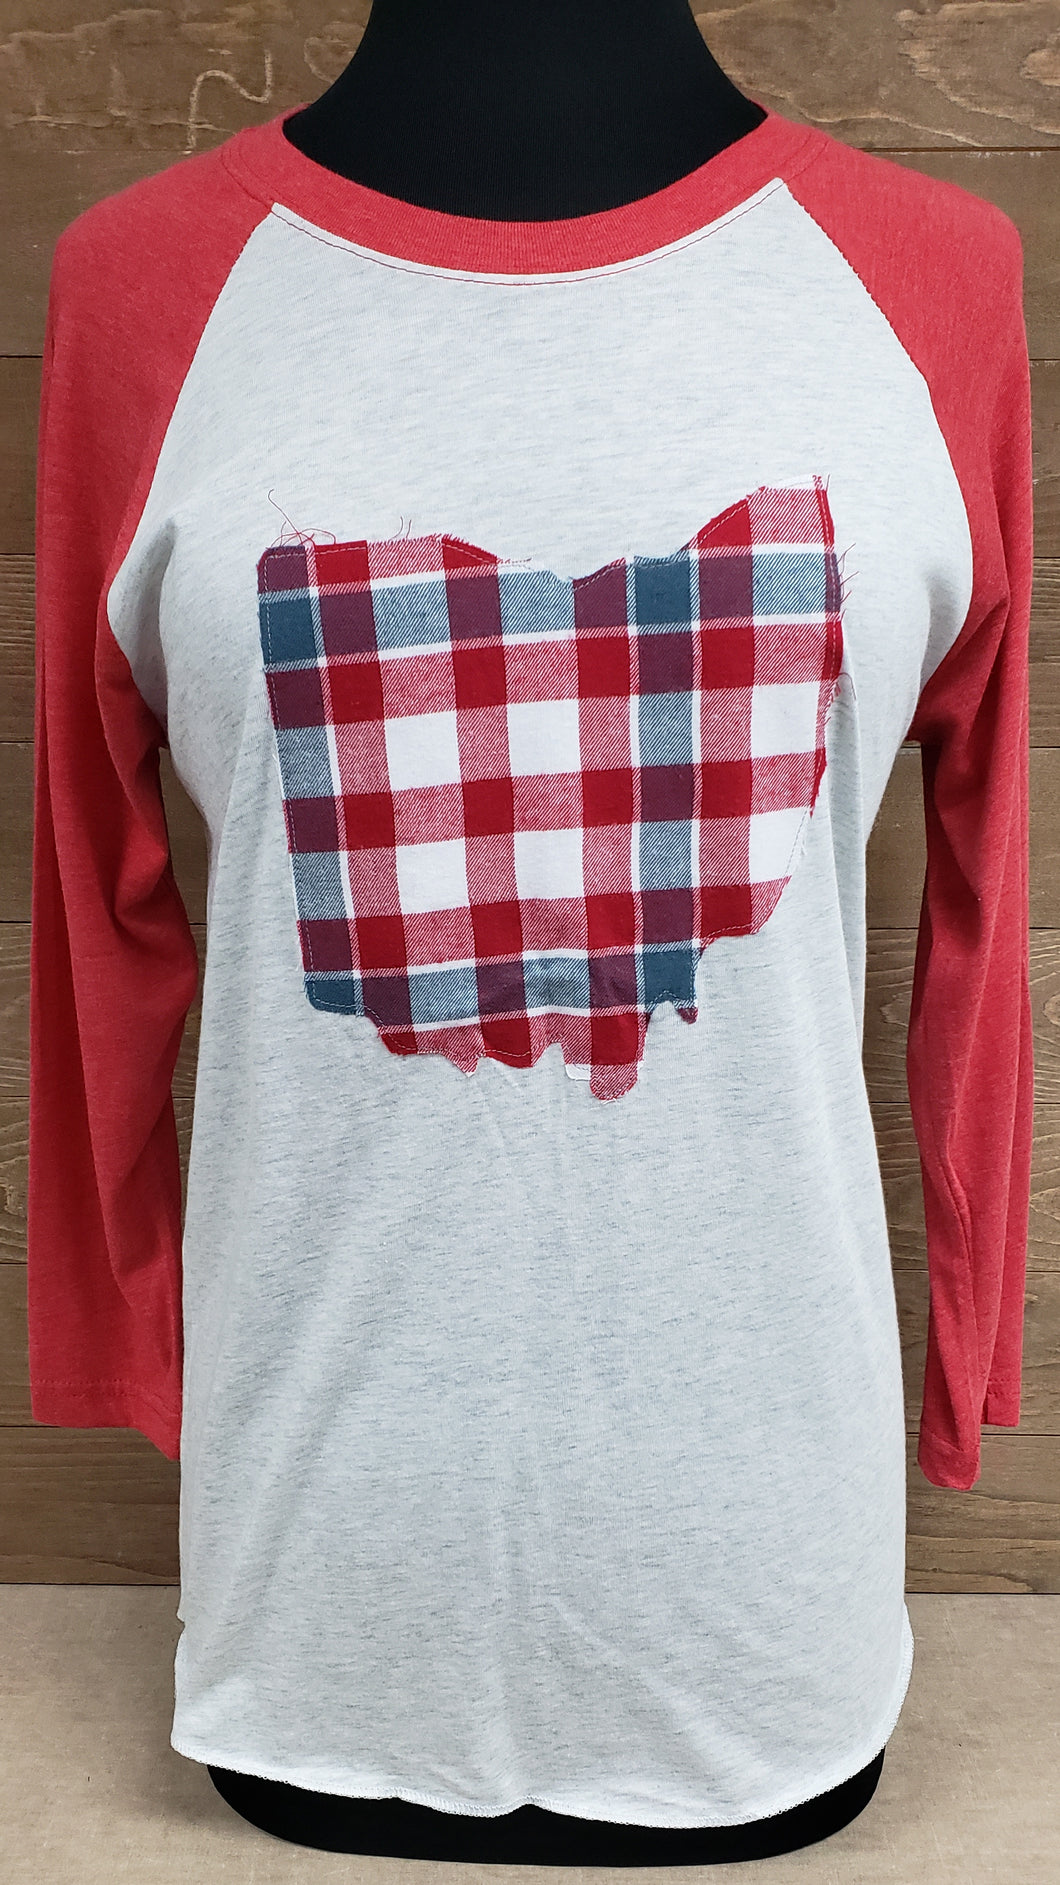 Super soft ohio baseball t-shirt. Show your Ohio pride while wearing this cute t-shirt